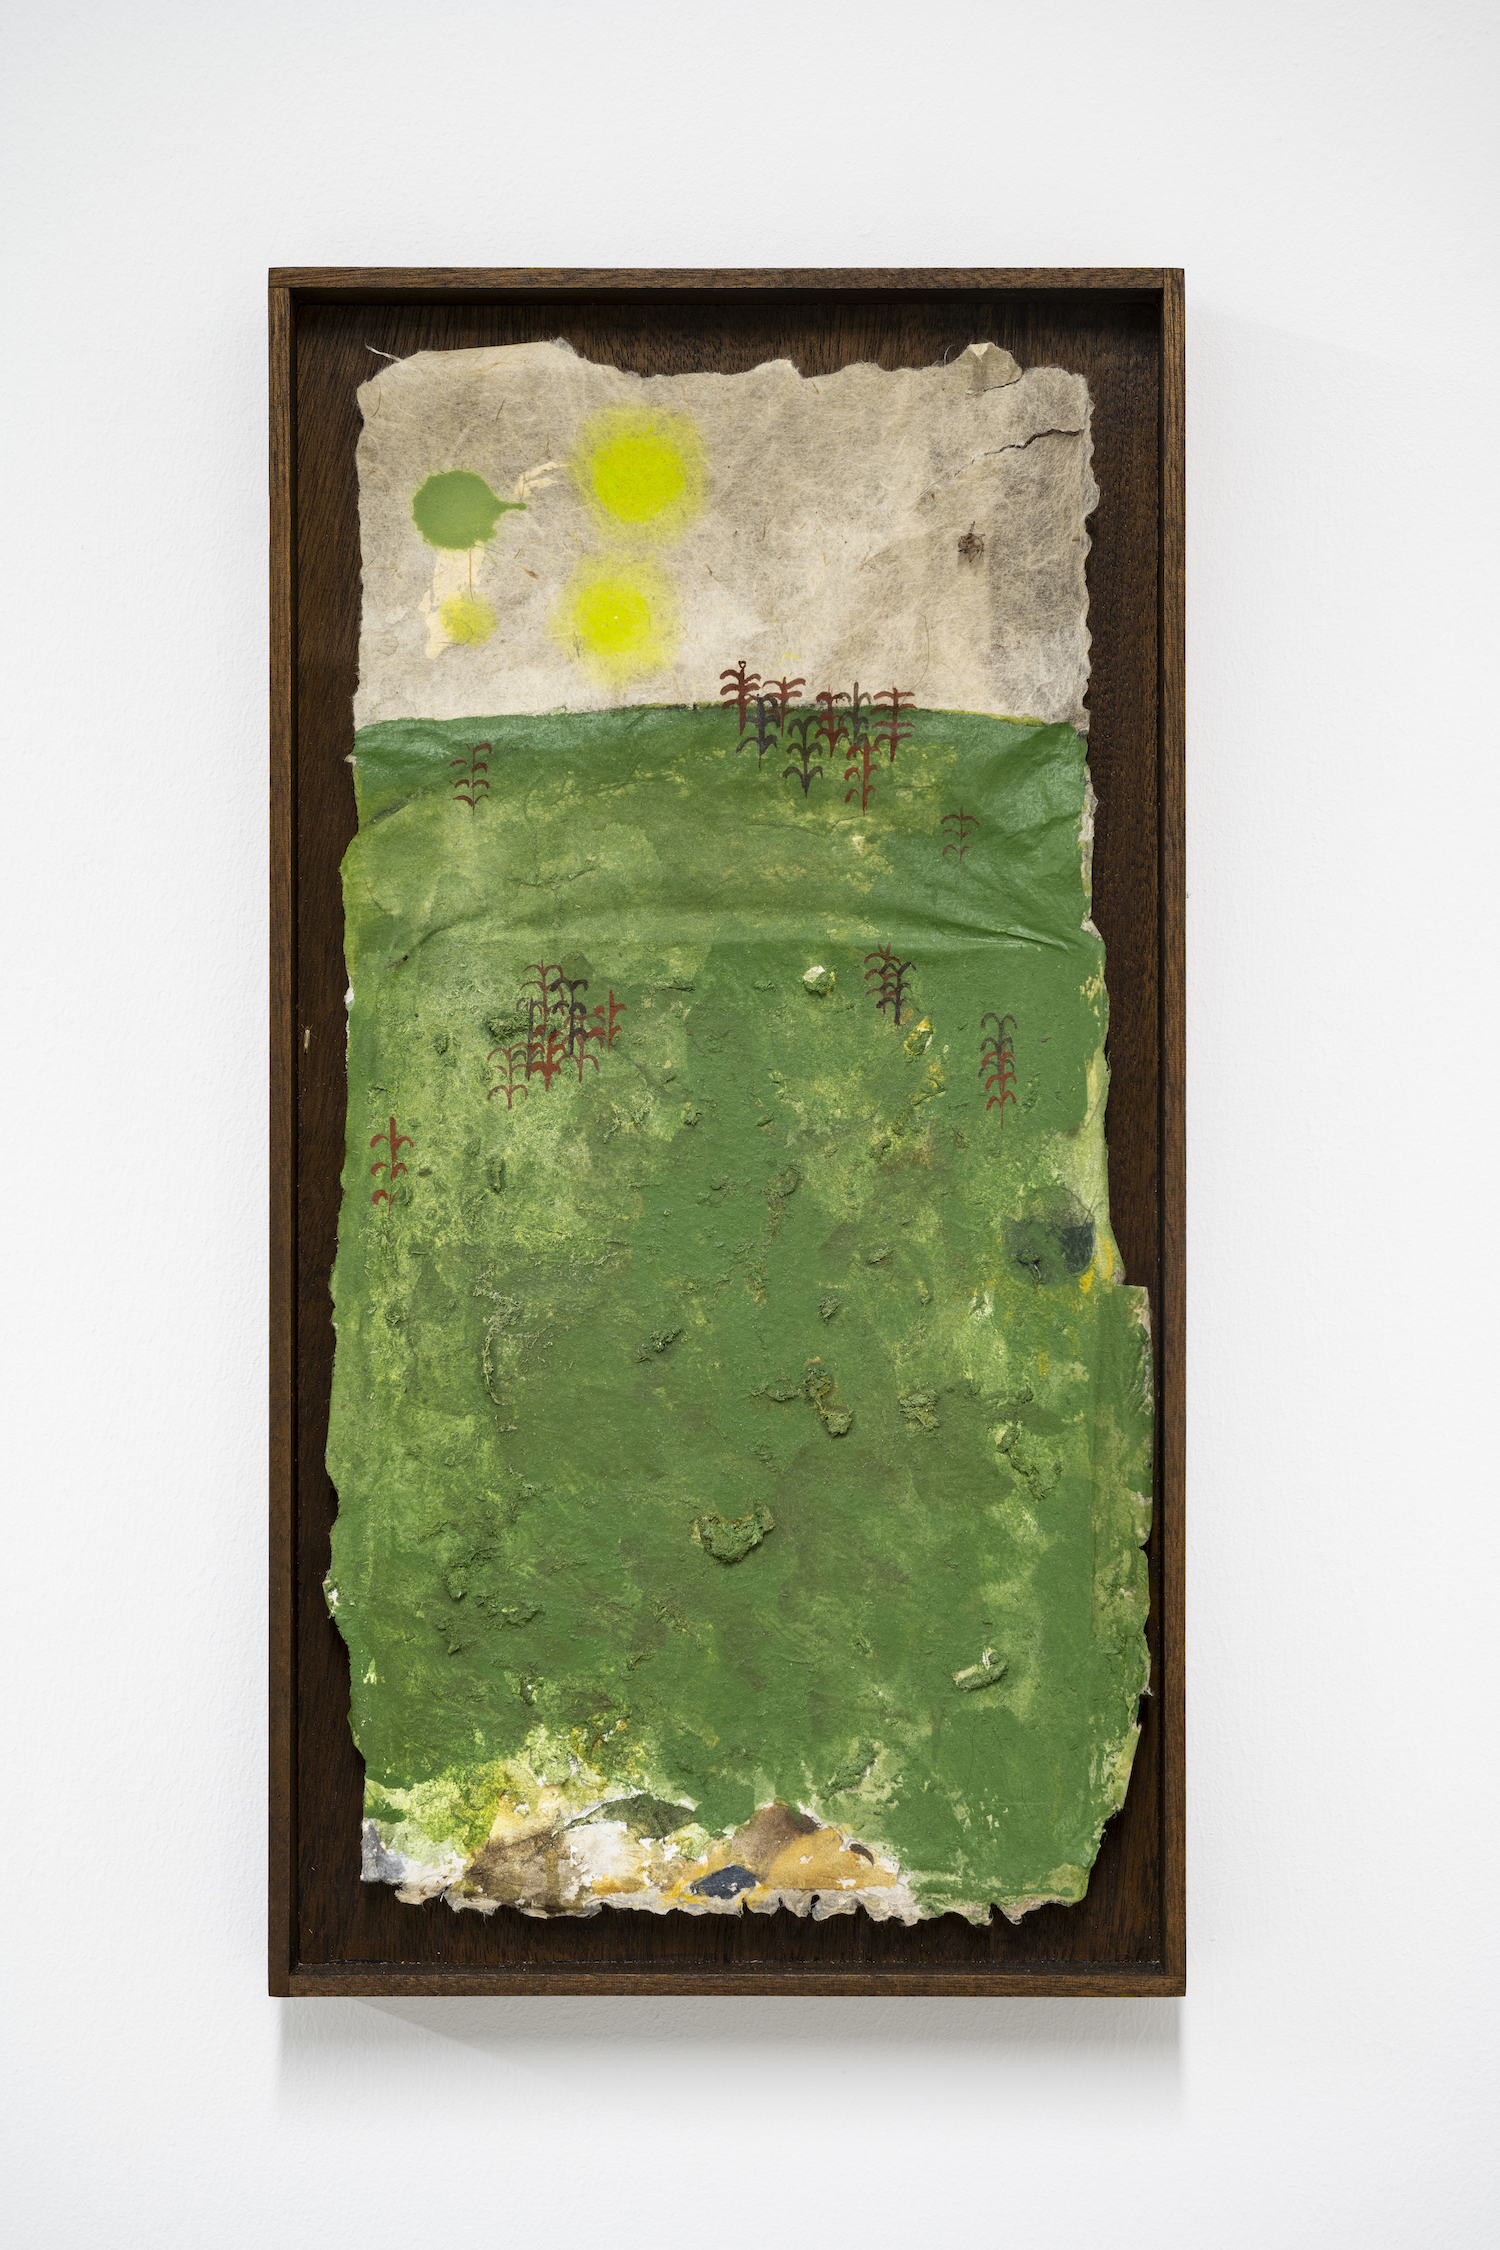 Luca Longhi, 'Untitled (tentative)' 2020. Watercolour, oil, acrylic, sawdust and scrap paper, 31.5 x 17 cm. Photo credit: Damian Griffiths